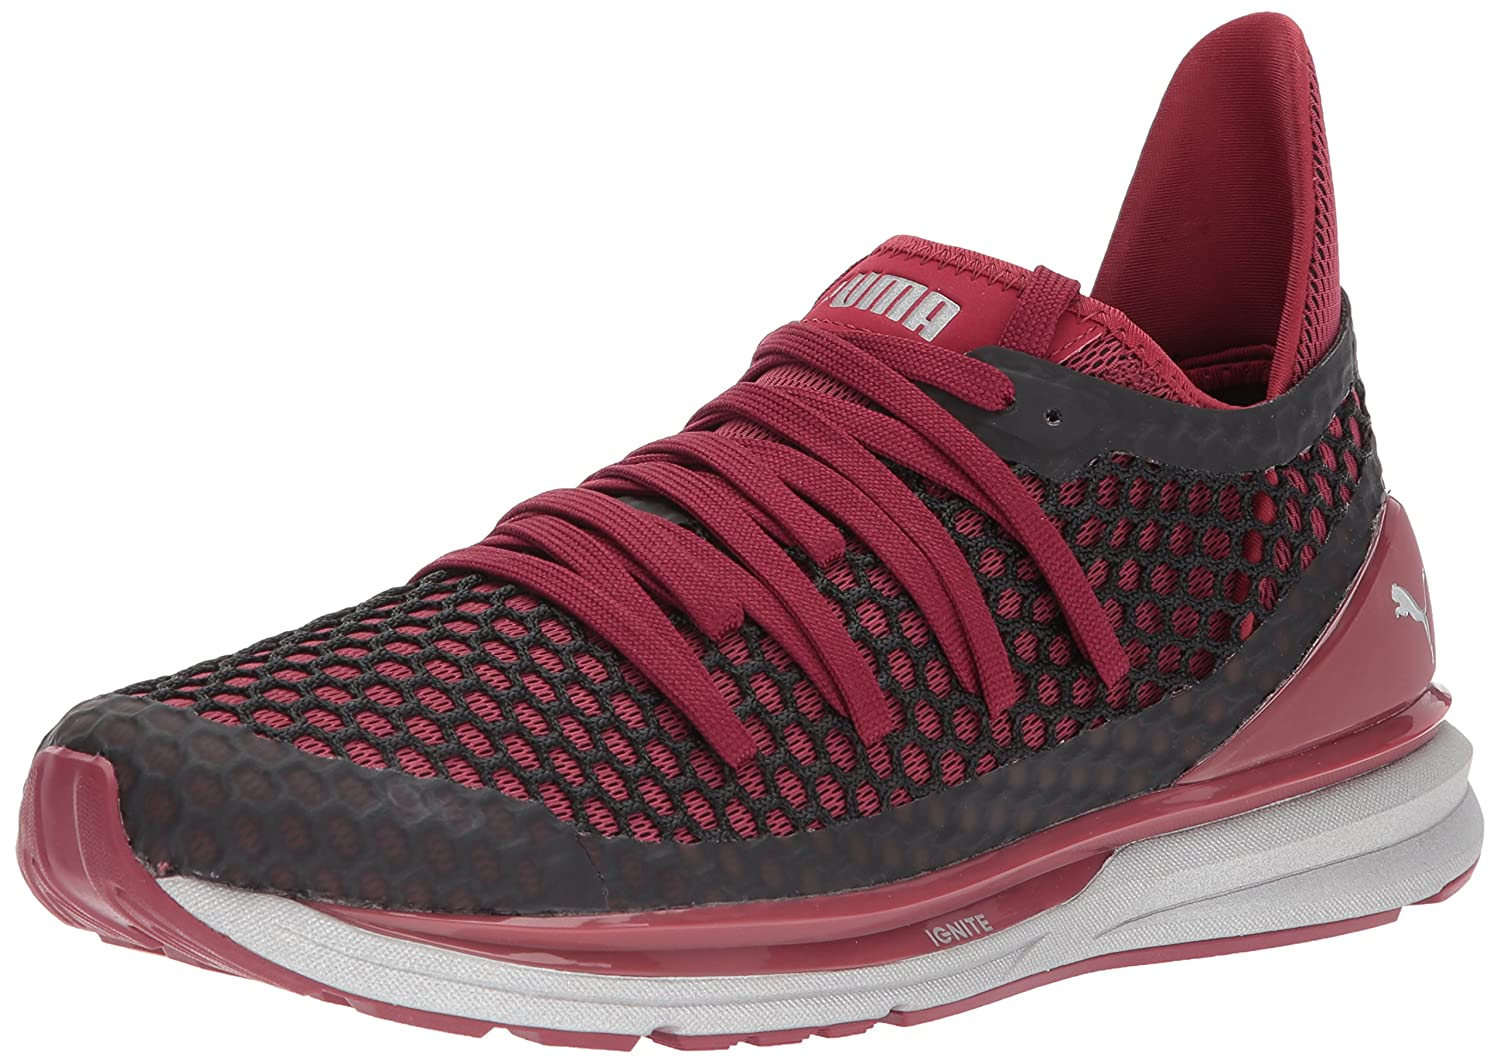 the best attitude 4fa6c 85c5d PUMA Men's Ignite Limitless Netfit NC Sneaker